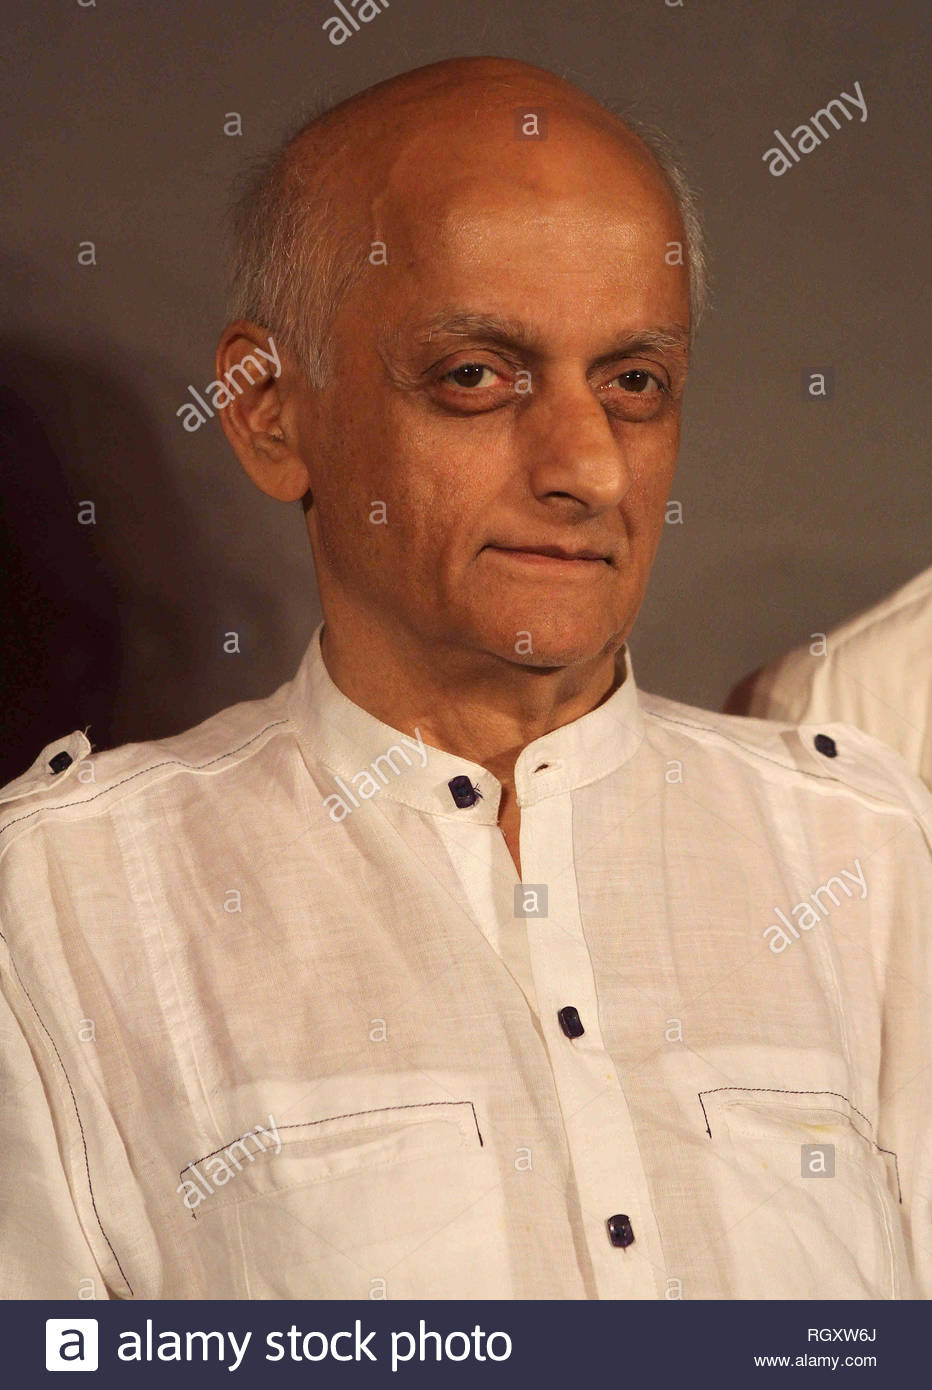 Bollywood filmmaker Mukesh Bhatt during a press conference announcing the South Africa India Film and Television Awards (SAIFTA) in Mumbai, India on July 15, 2013. (Shailesh Andrade) - Stock Image